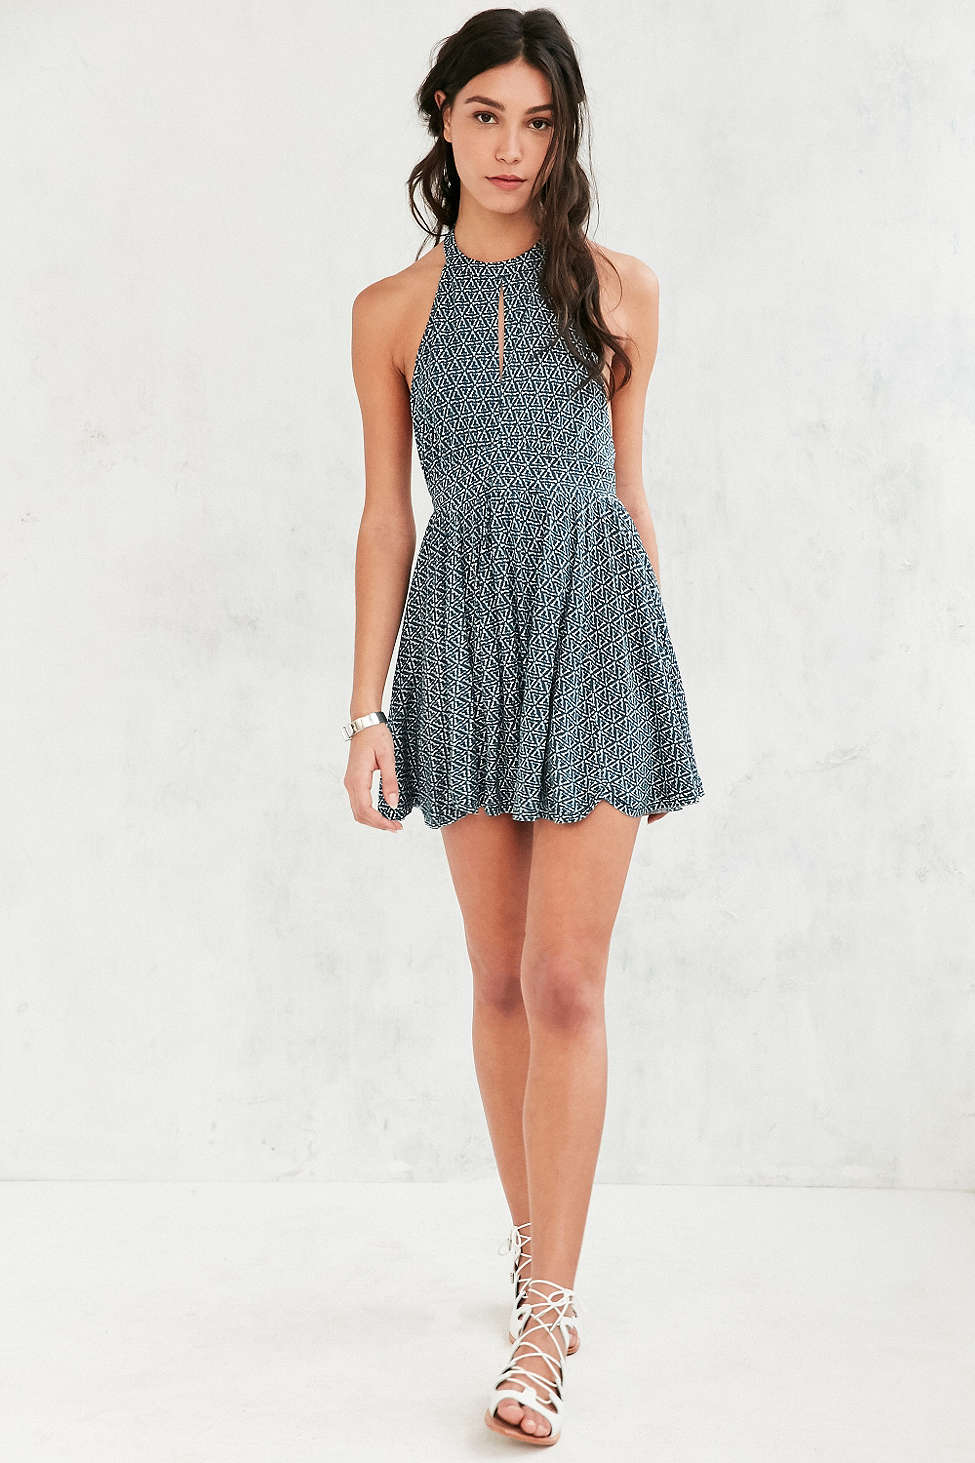 Ecote Patterned High-Neck Keyhole Romper, Urban Outfitters